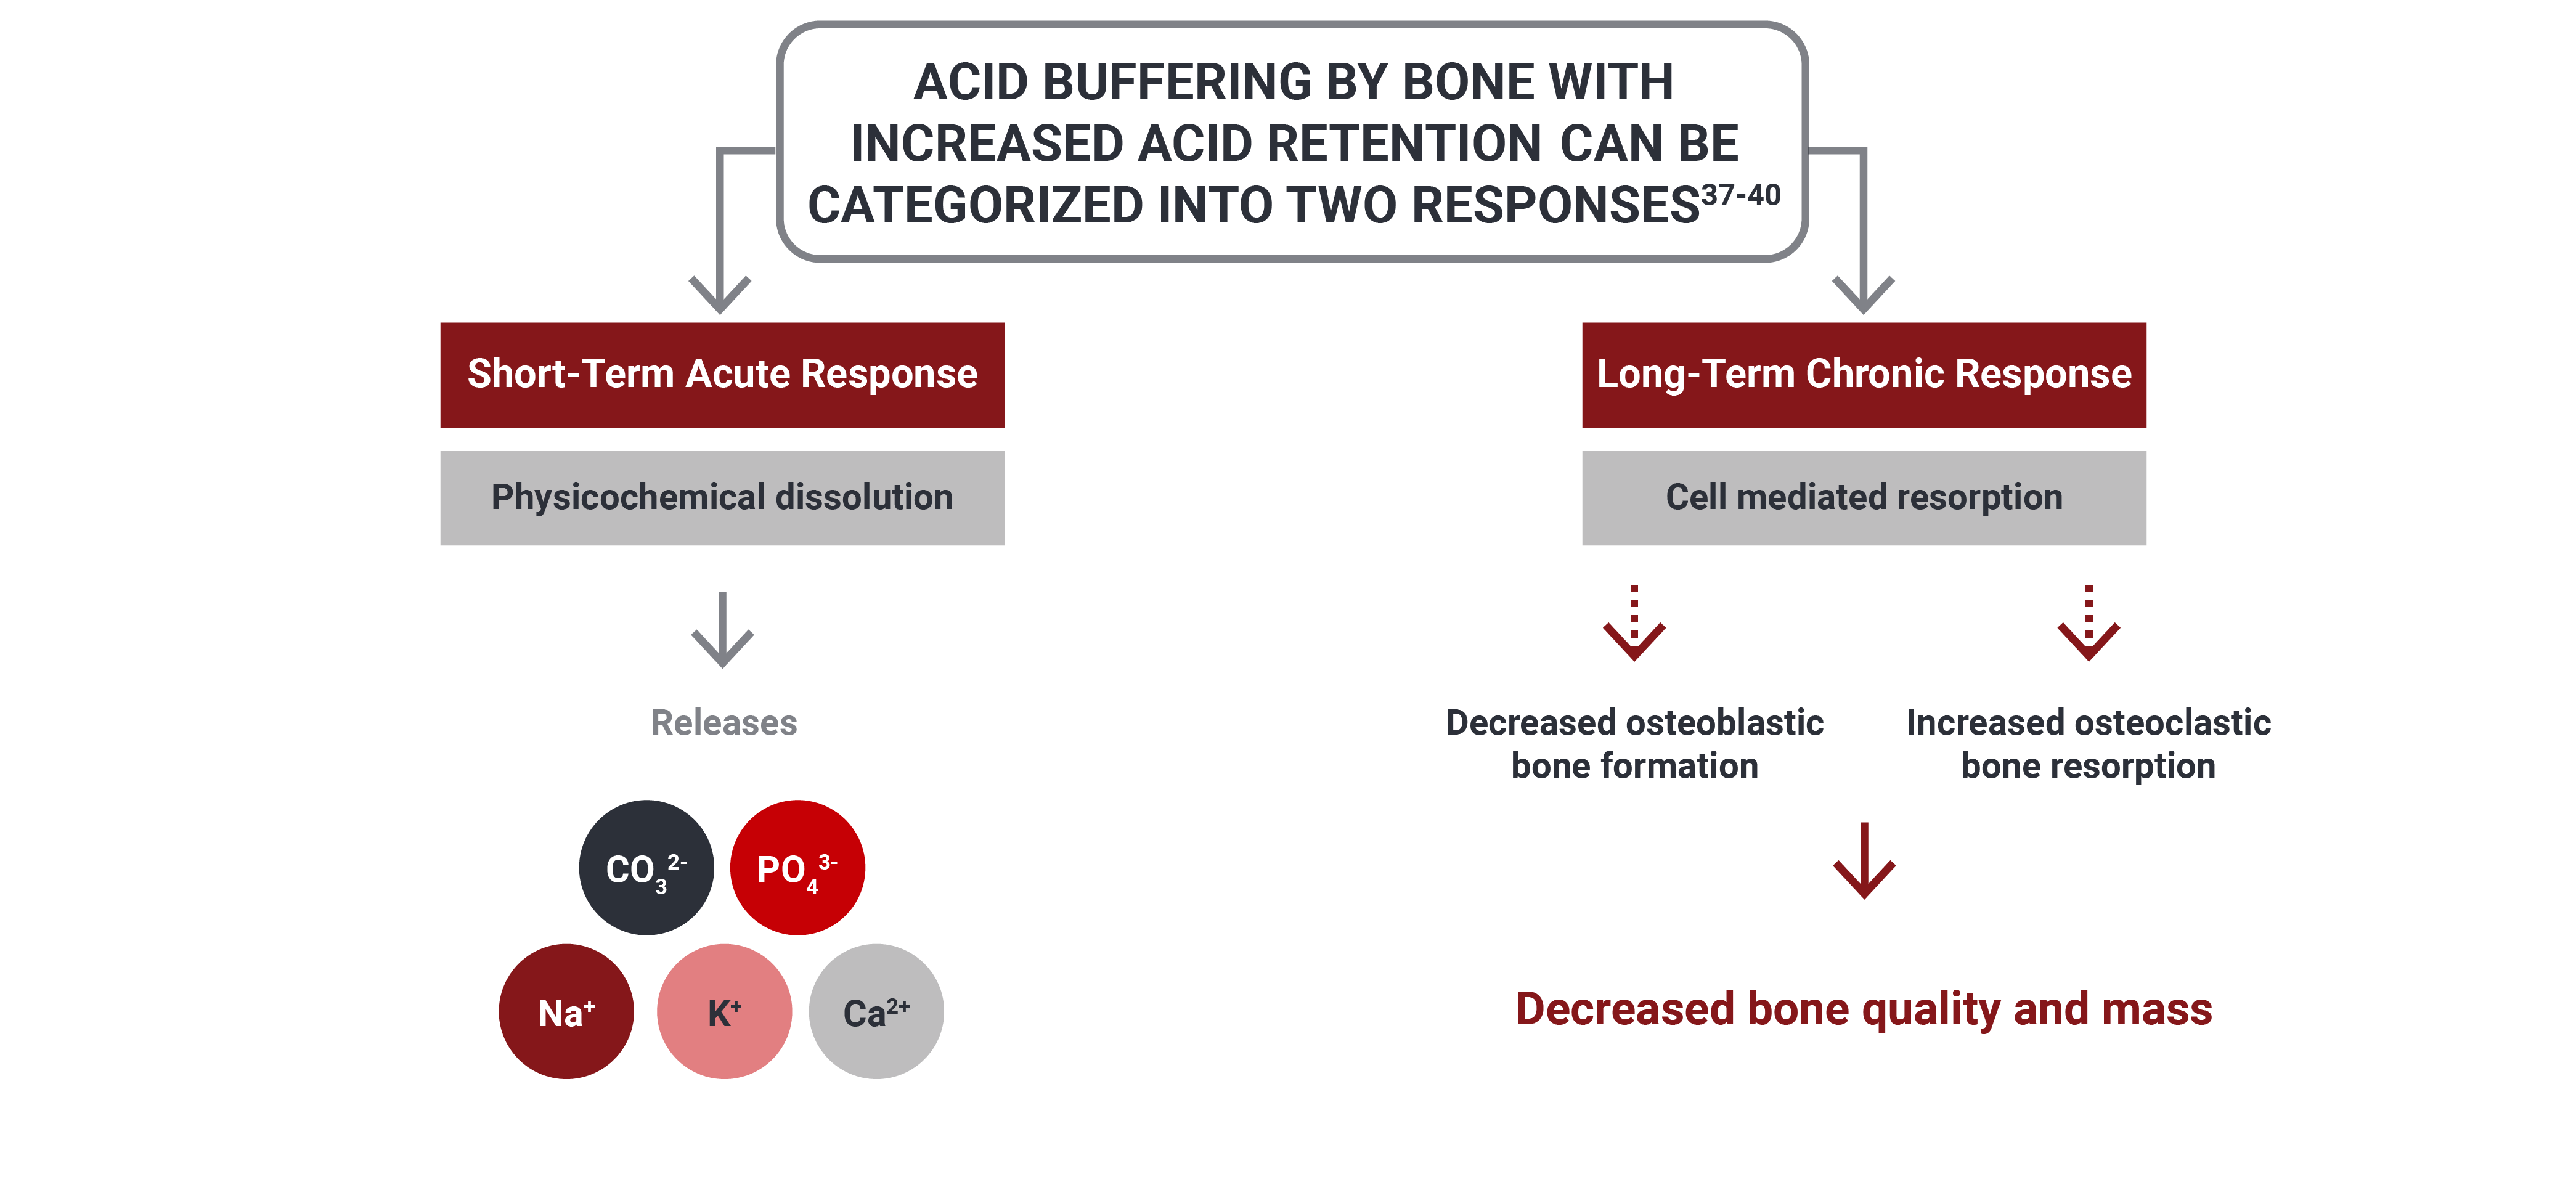 Acid buffering by bone with increased acid retention.